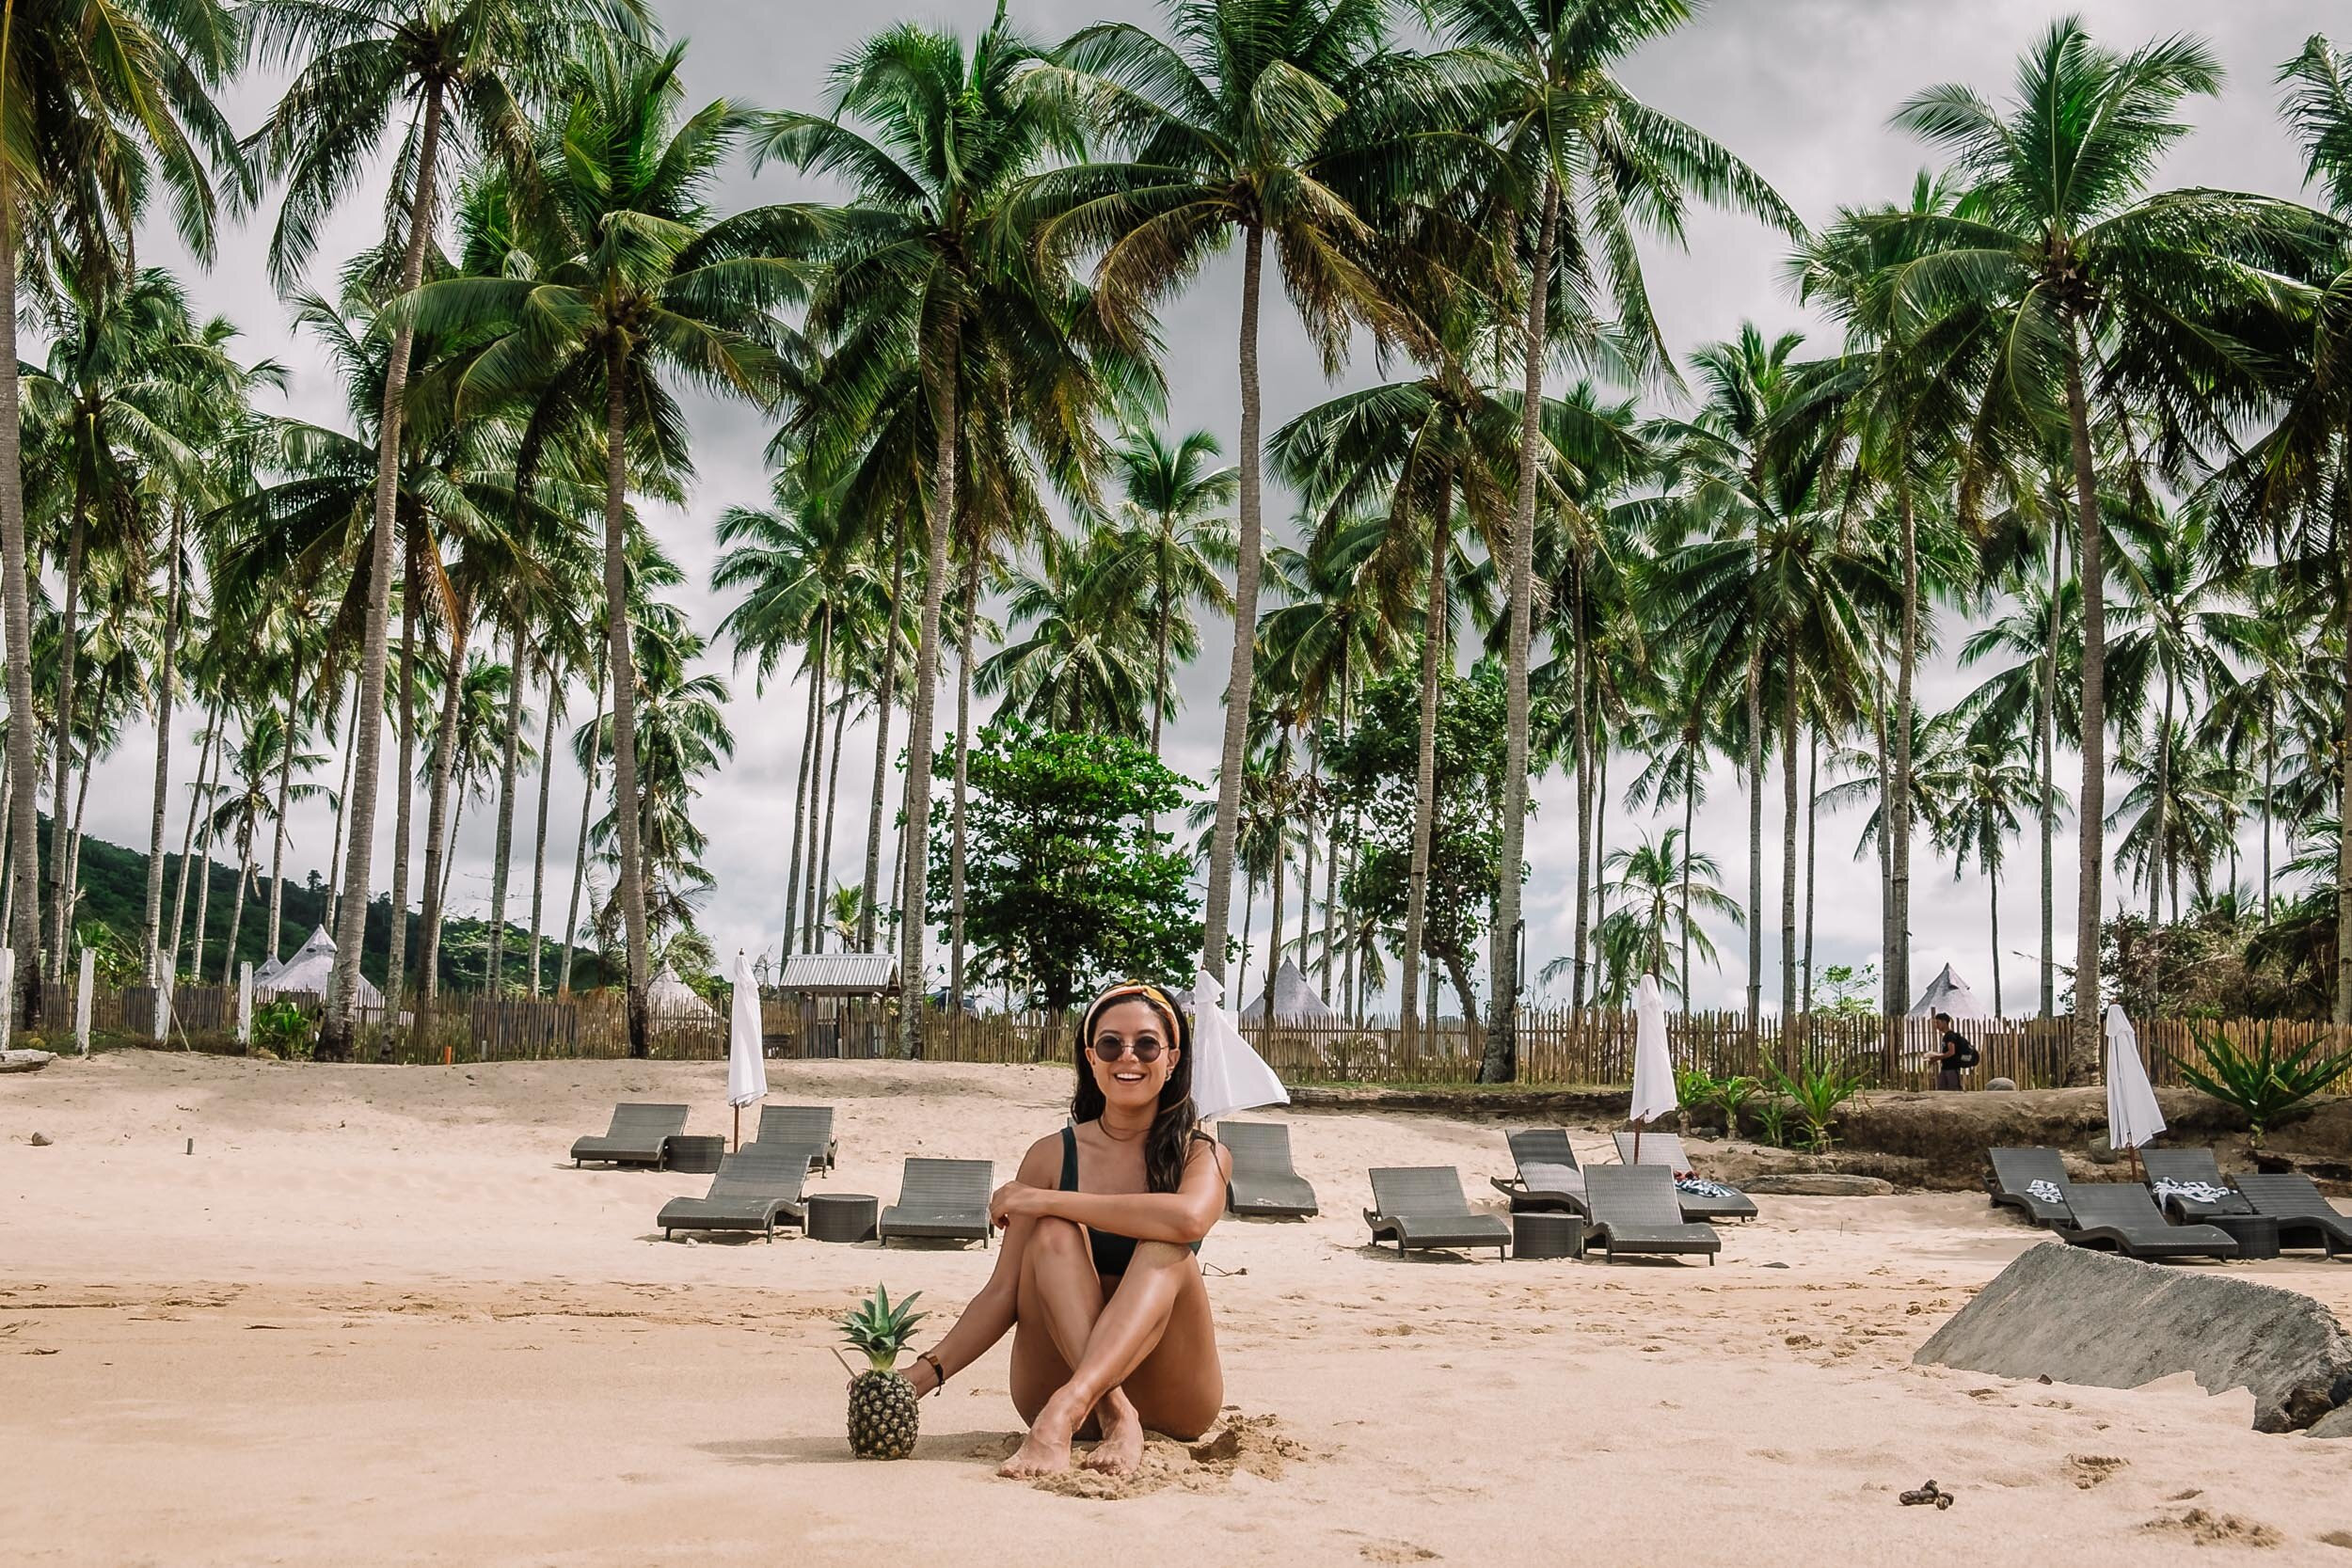 Rachel Off Duty: Woman on the Beach with a Pineapple, Philippines